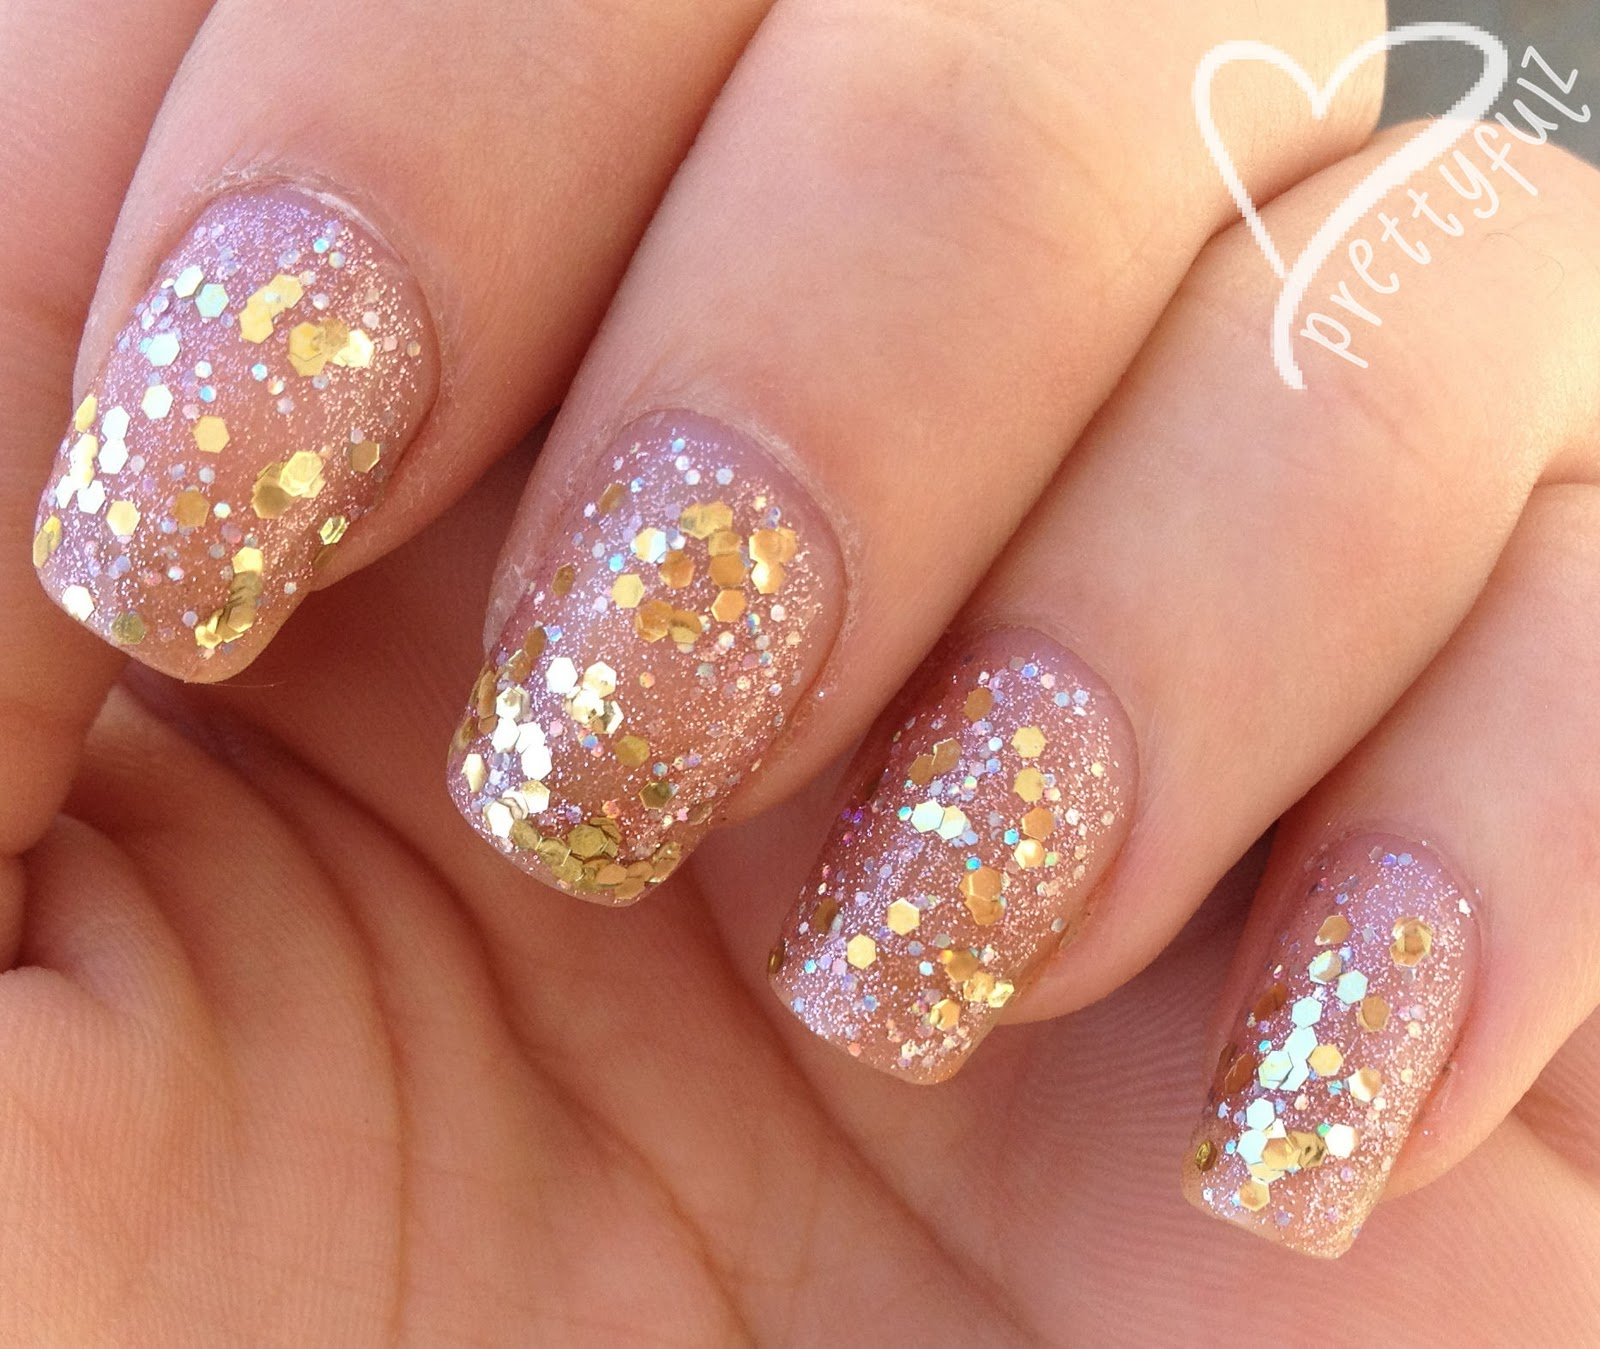 Prettyfulz Fall Nail Art Design 2011: Prettyfulz: Teenage Dream & Milani Gold Nails